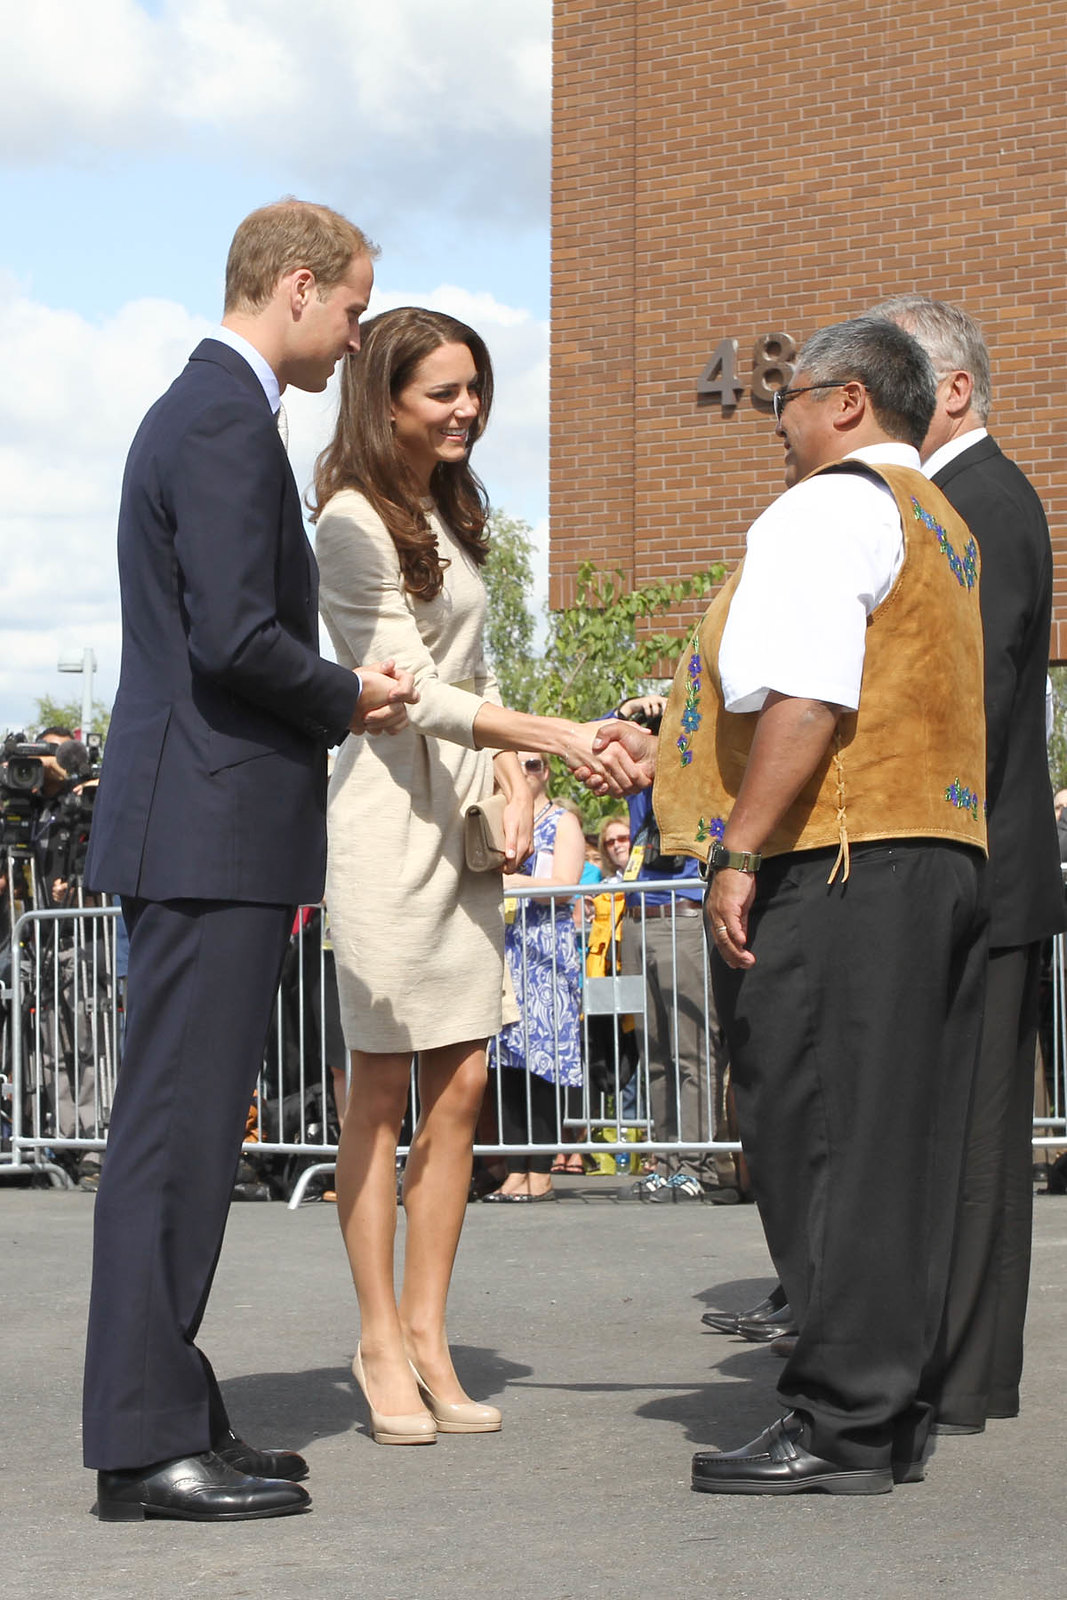 The Duchess of Cambridge wore Malene Birger Bullet Dress during northwest territories visit in Canada in 2011